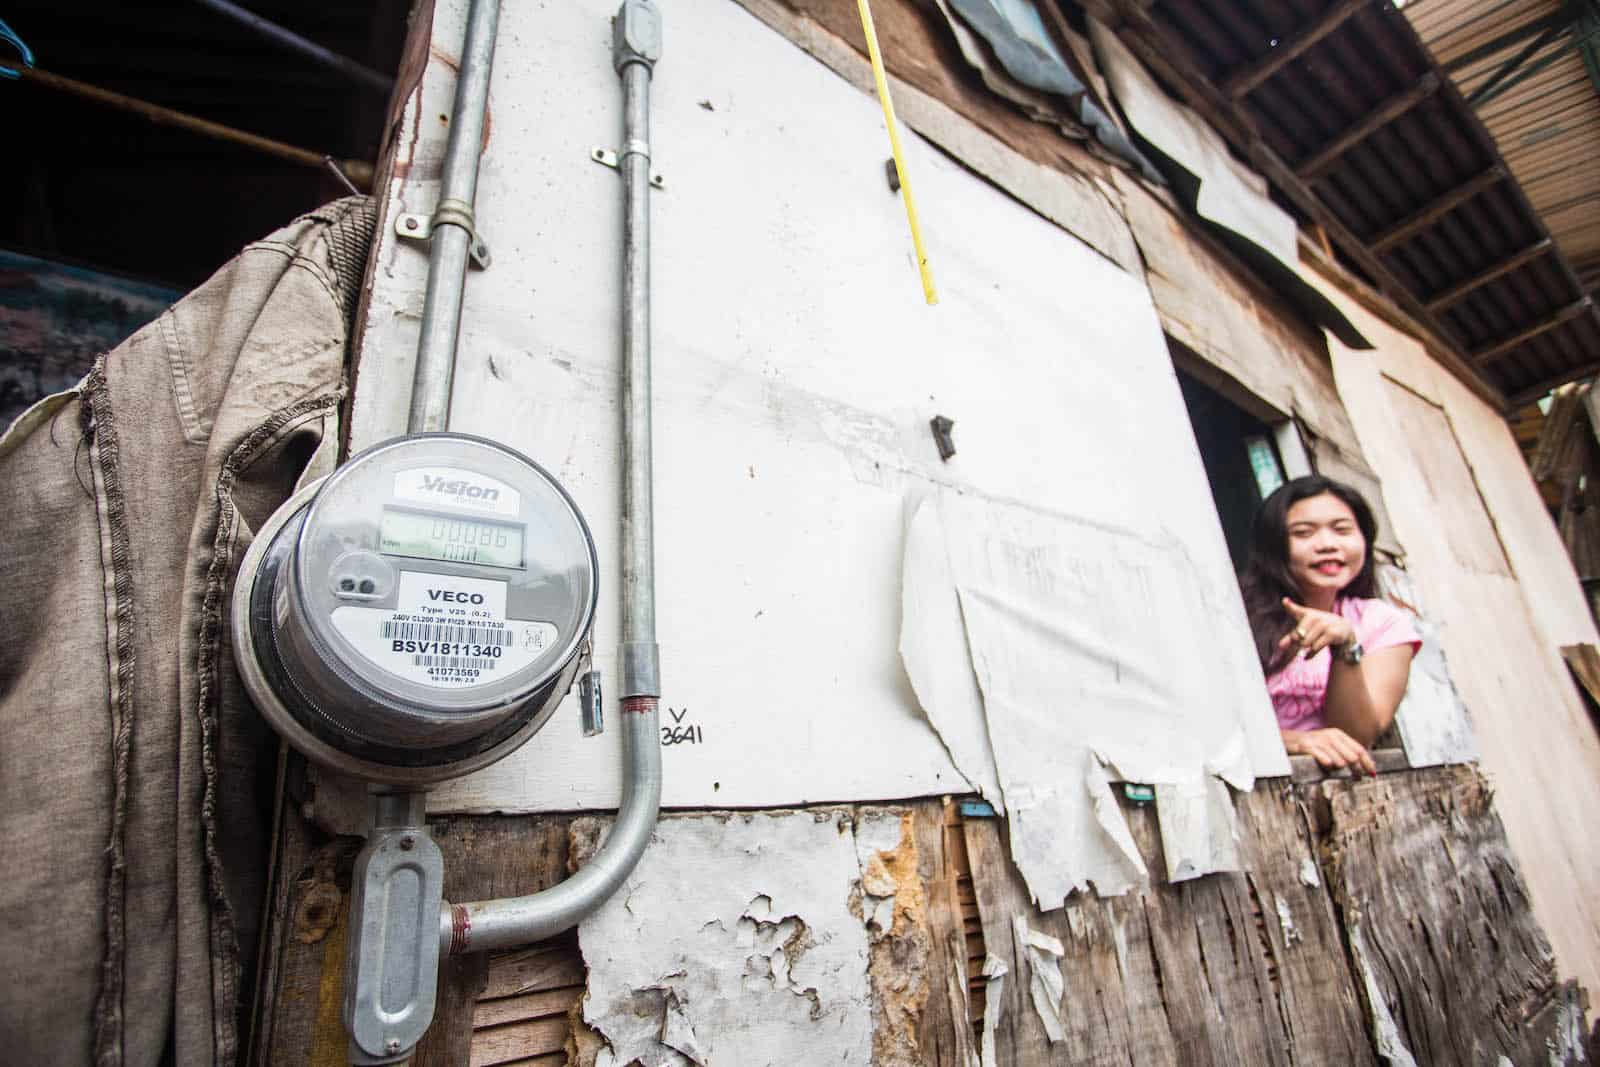 A girls leans out of a window of a makeshift home, pointing at an electrical meter.